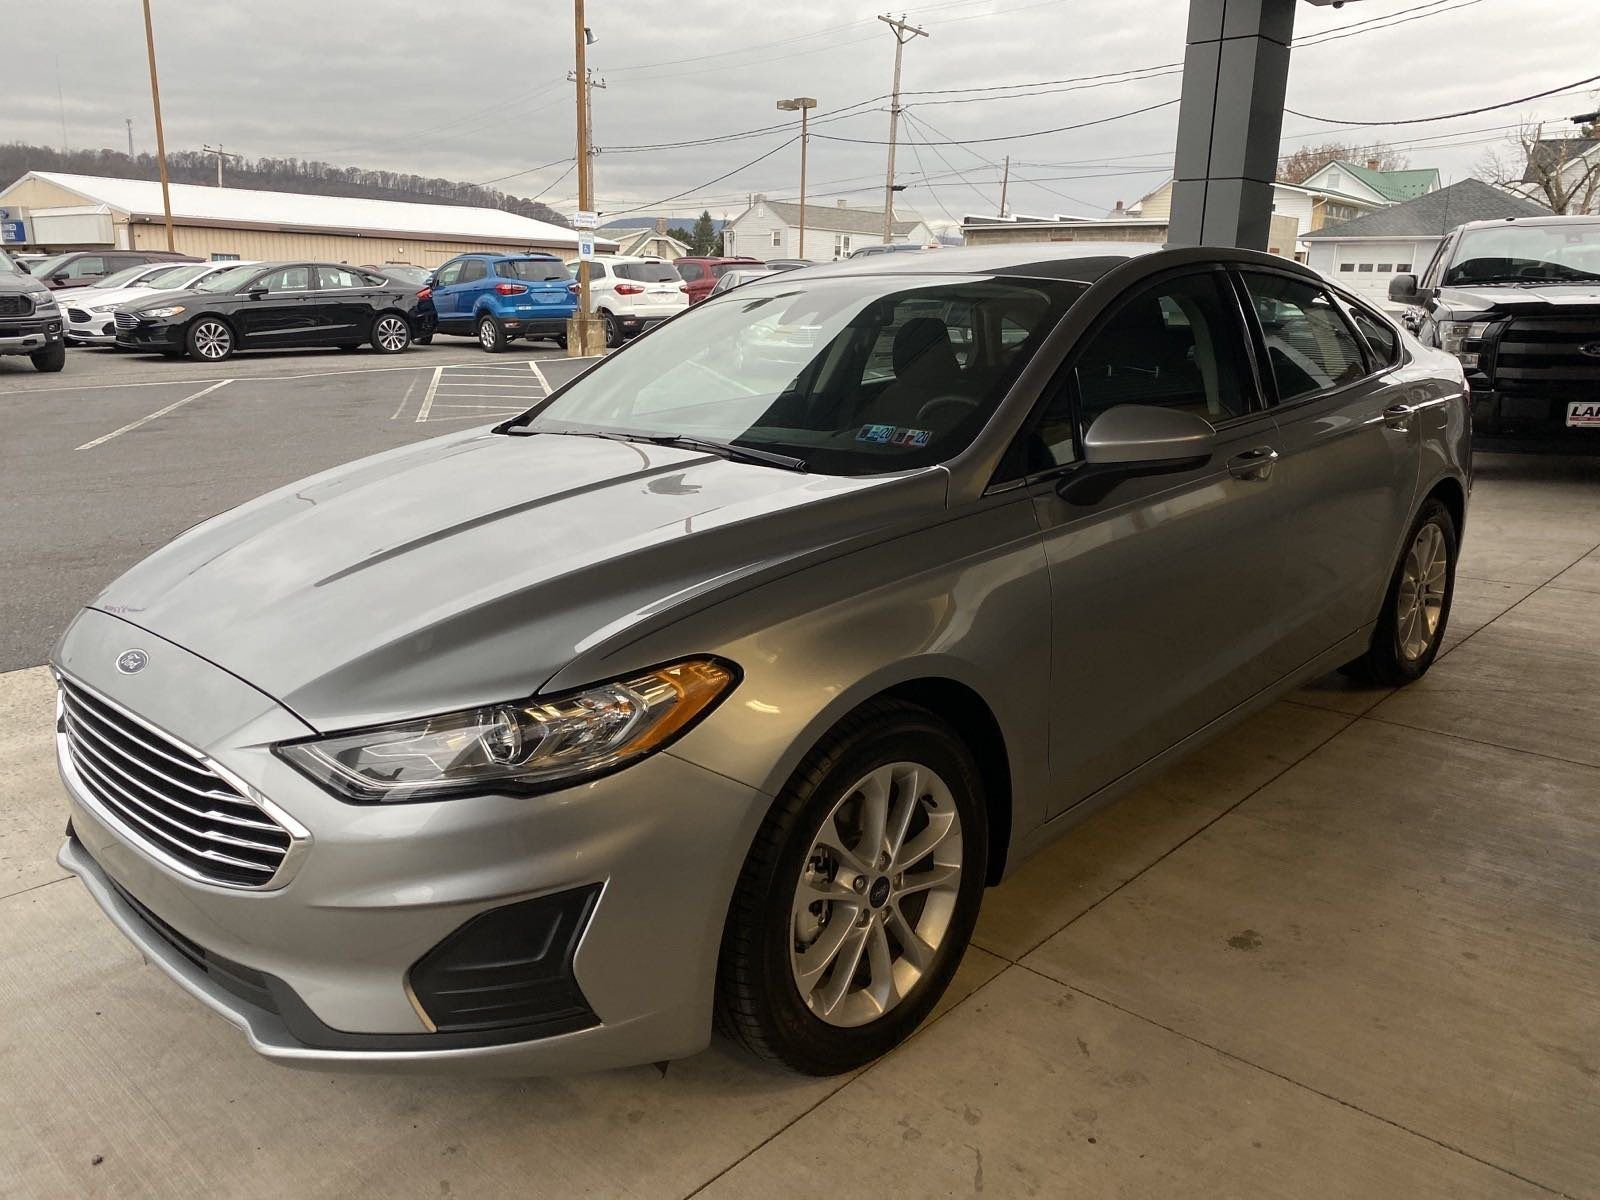 2020 ford Fusion Energi Performance in 2020 (With images